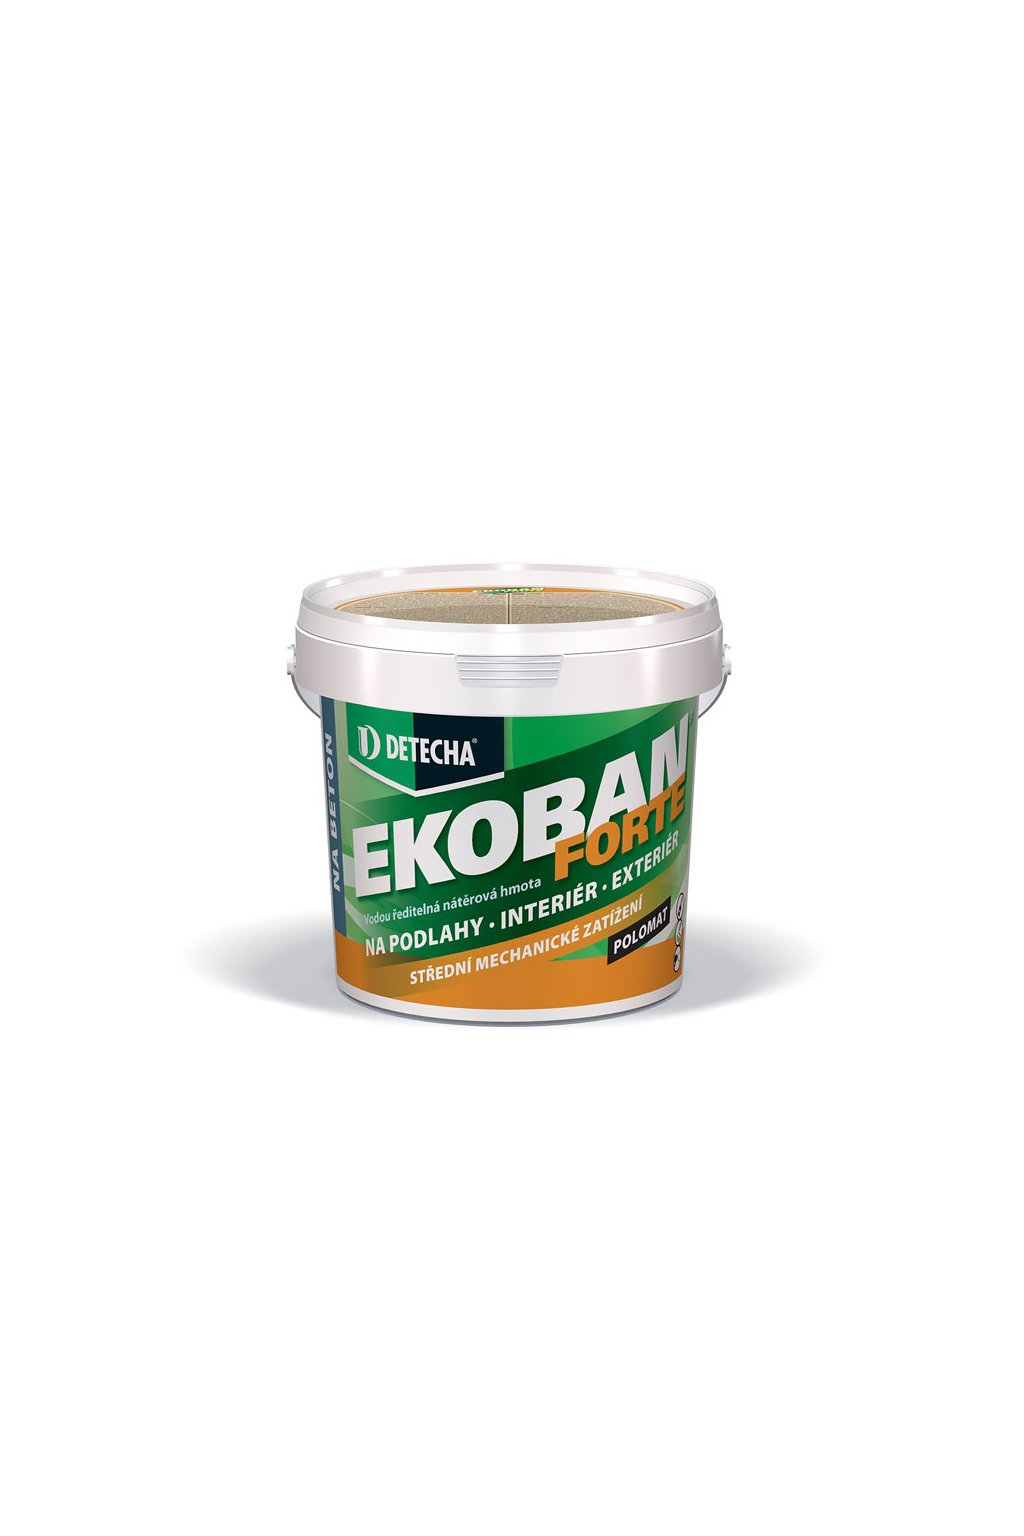 ekobanforte full